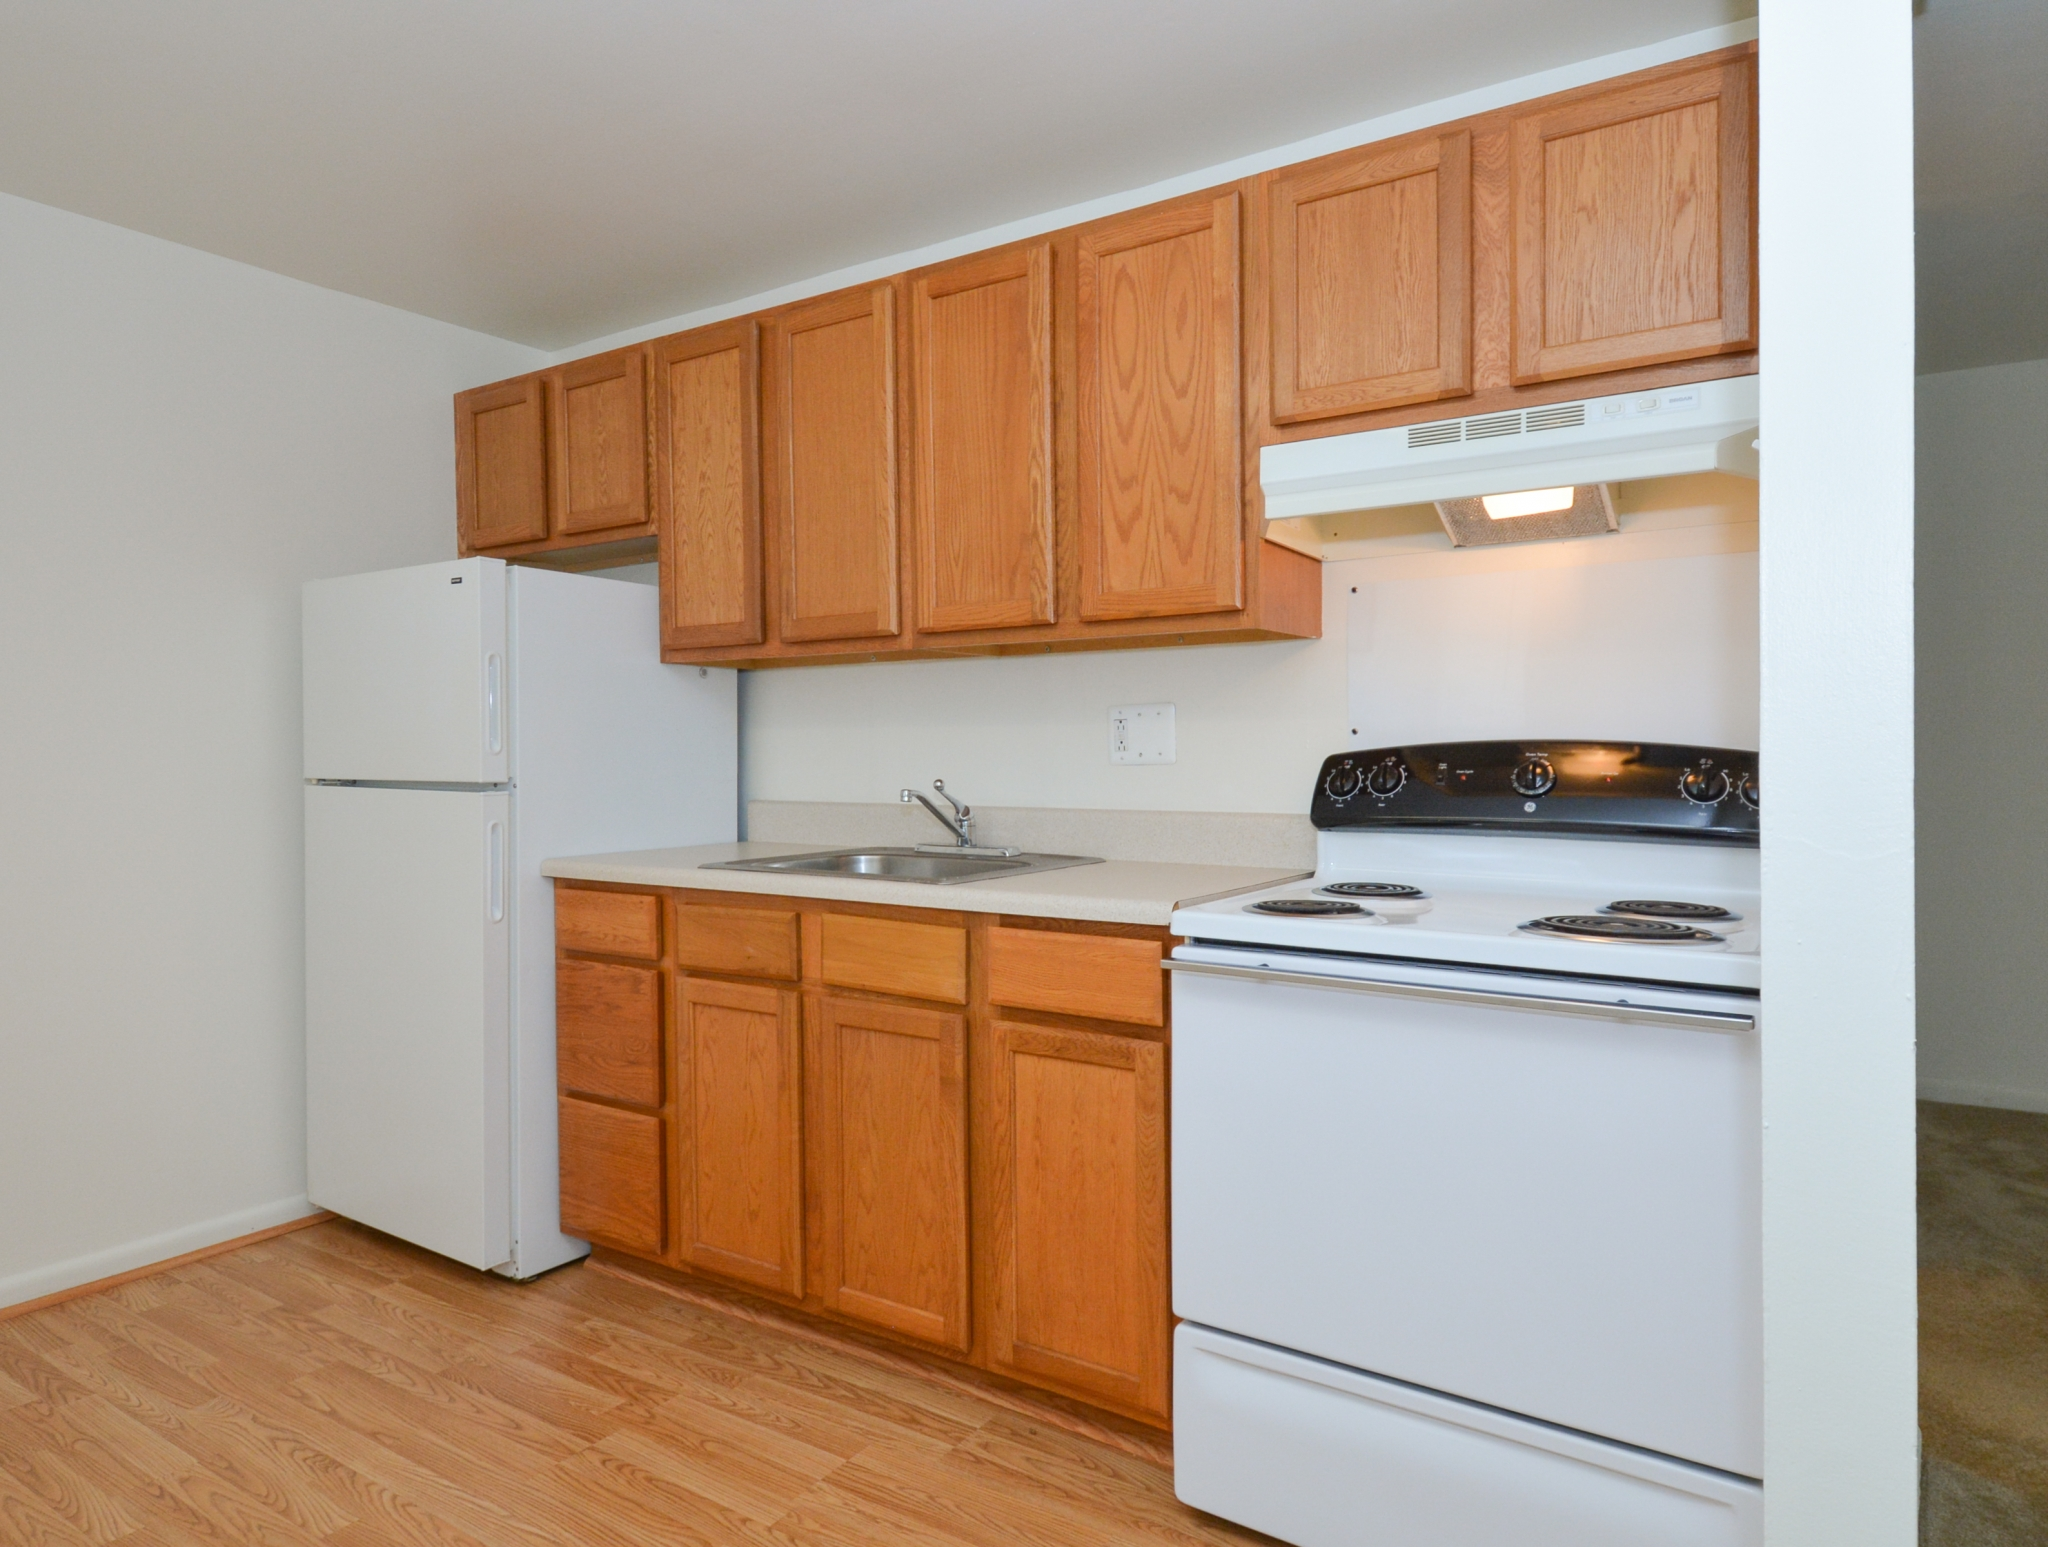 Modern Kitchen | Clifton Heights PA Apartment For Rent | The Villages of Westbrook Apartments